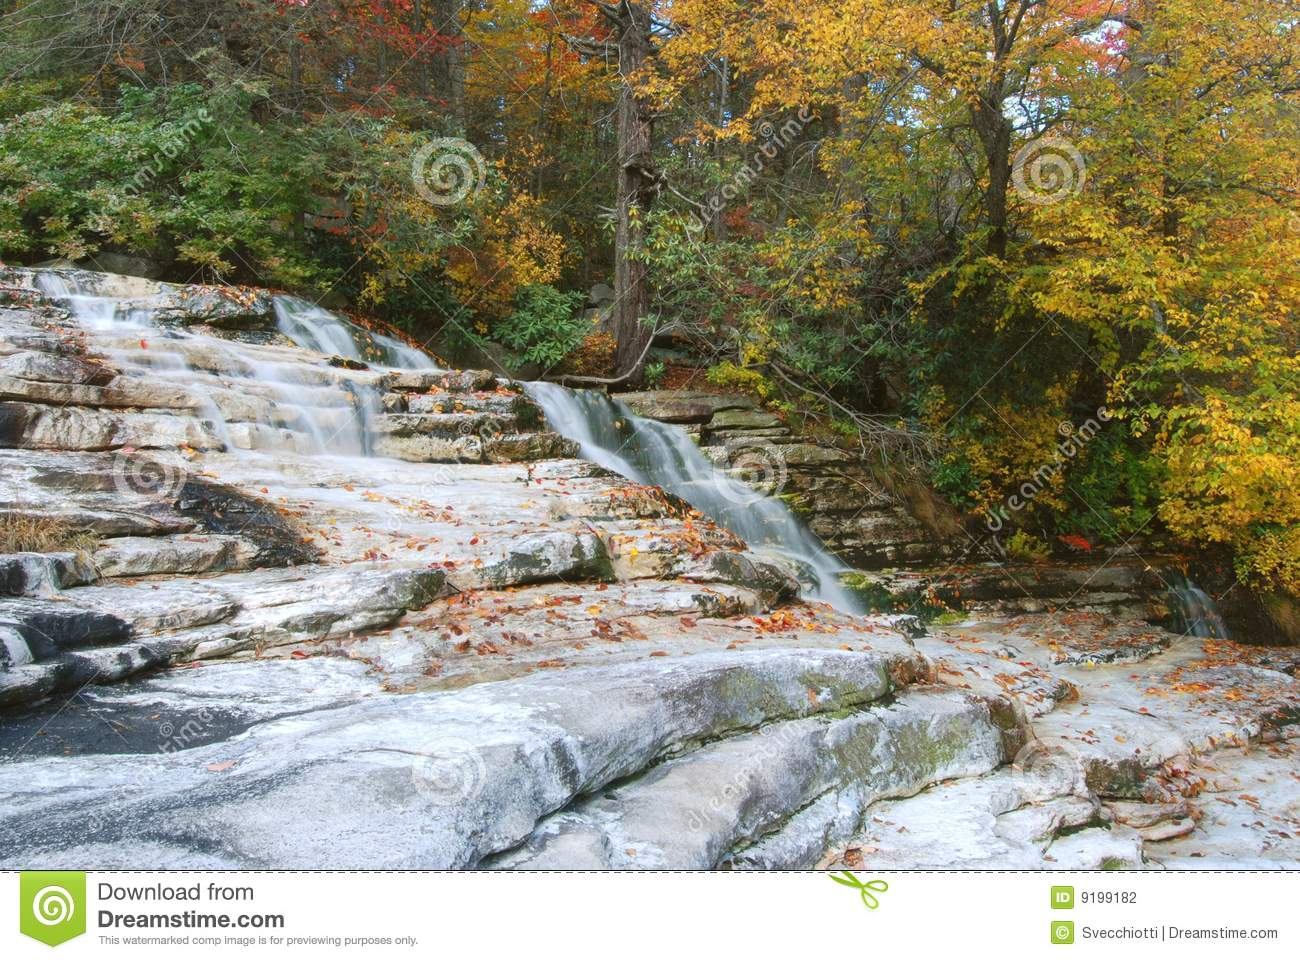 minnewaska state park map with Stock Photography New York State Waterfall Staircase Image9199182 on 5725657075 further Photostream additionally Ice Fishing Gull Lake Minnesota 10891 further Grayson Highlands State Park And Mount also Stock Photo Lake Minnewaska View Scenic Ulster County New York Image60168515.